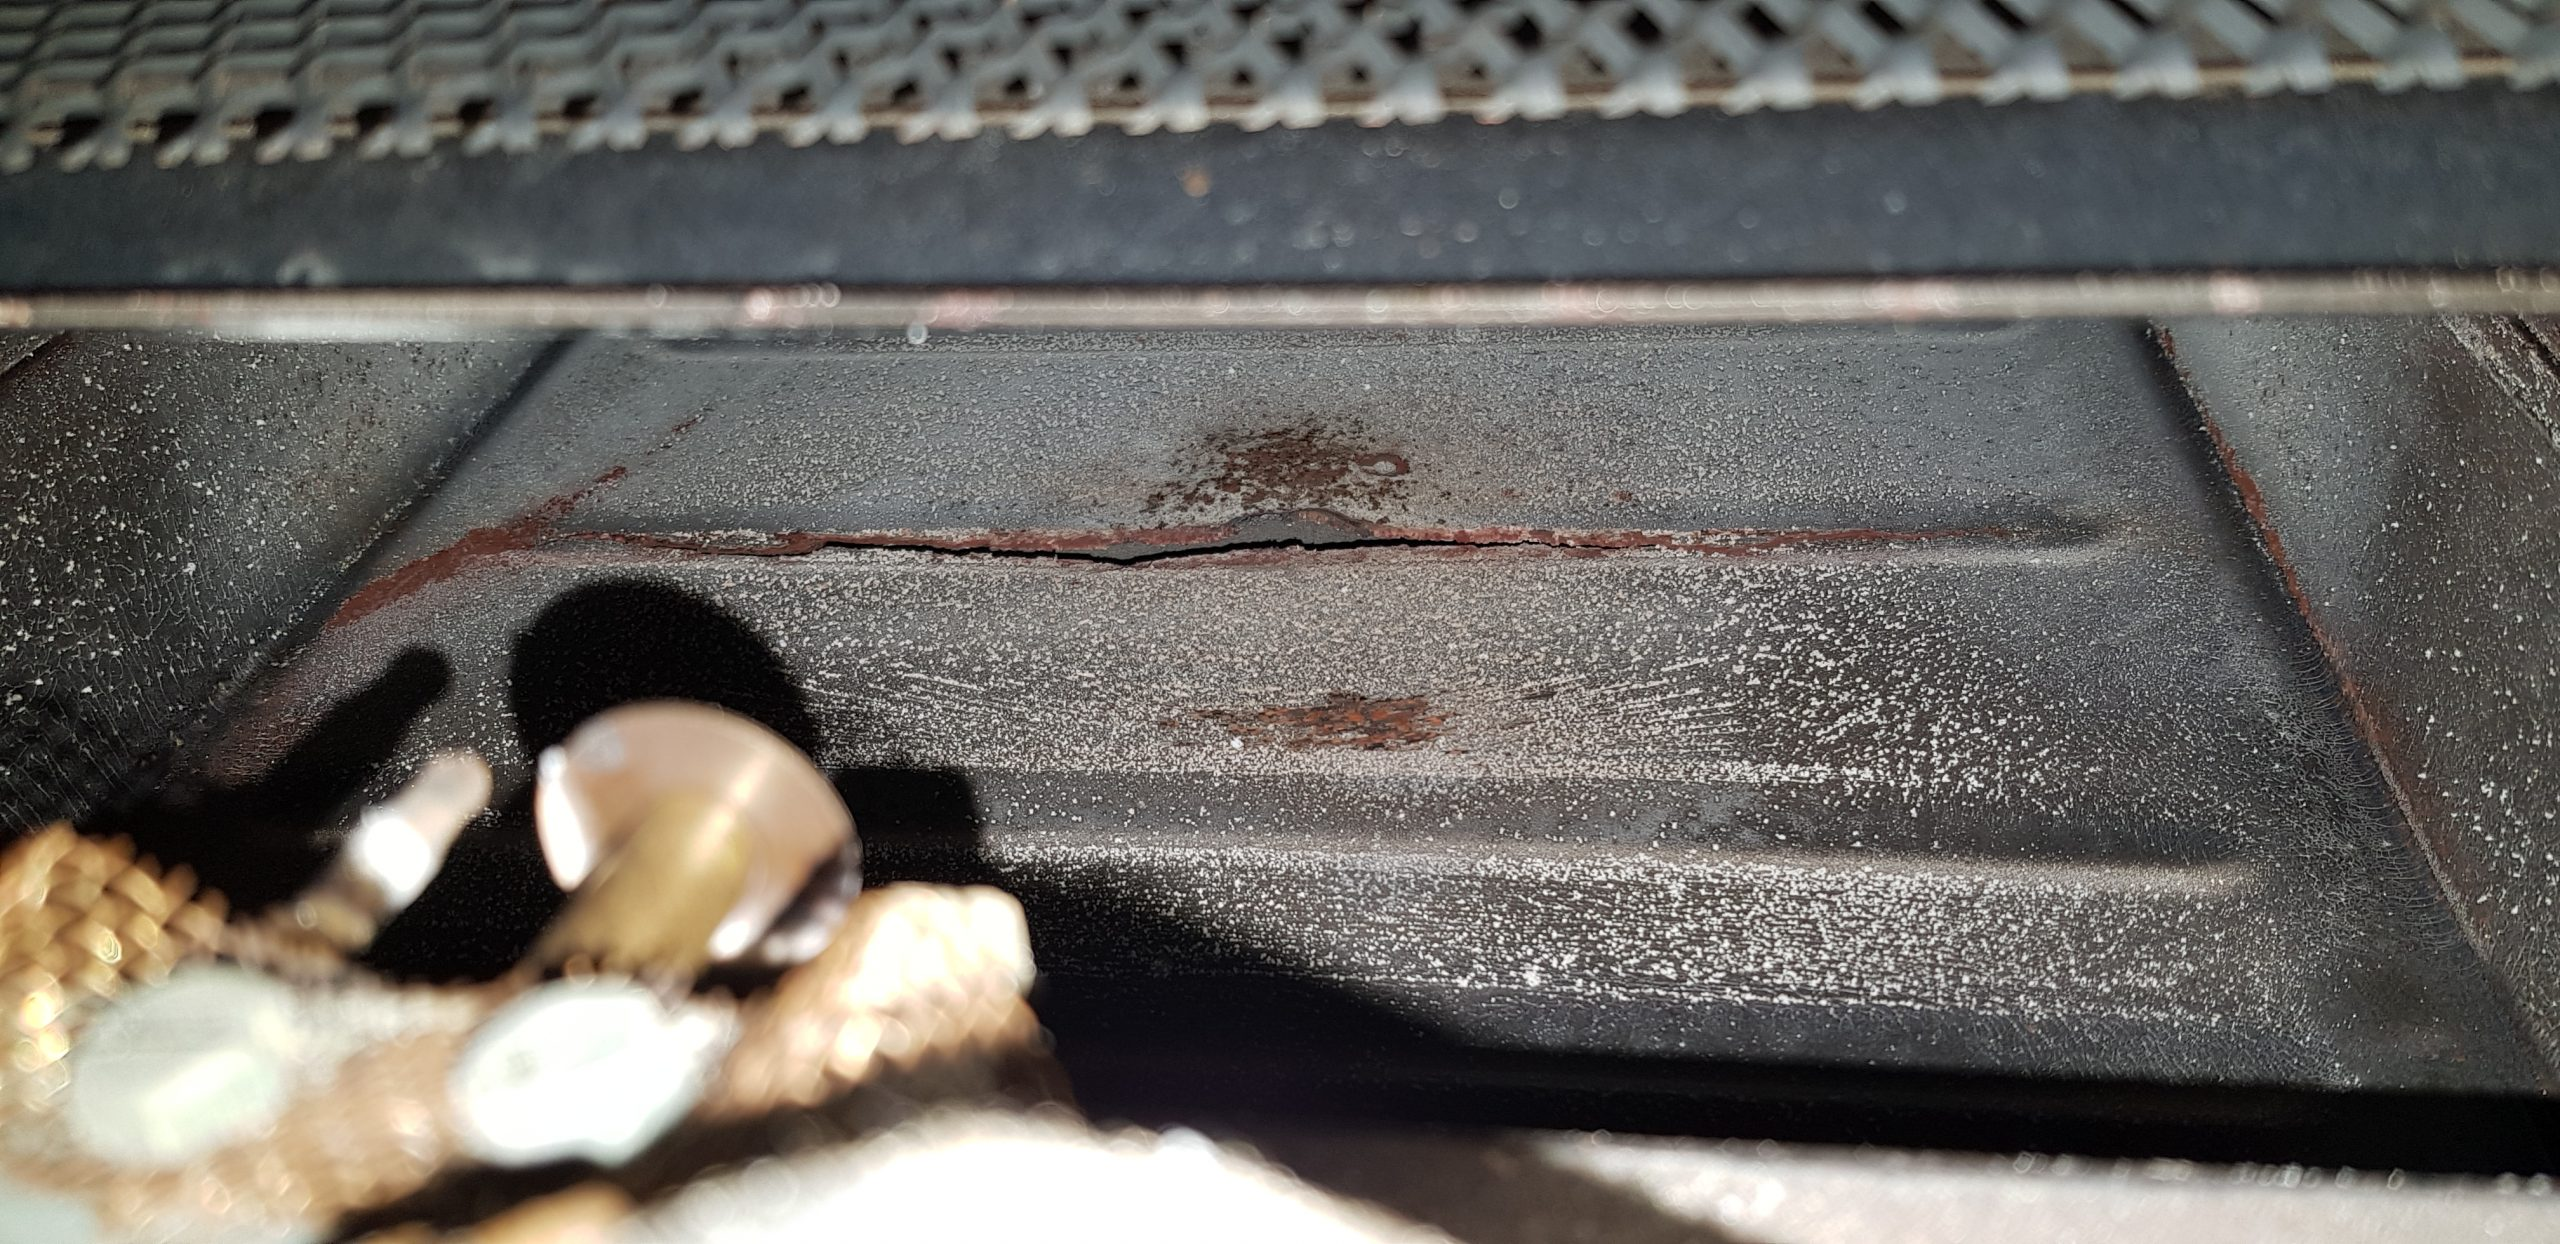 Braemar Cracked Wall Furnace Carbon Monoxide Issue